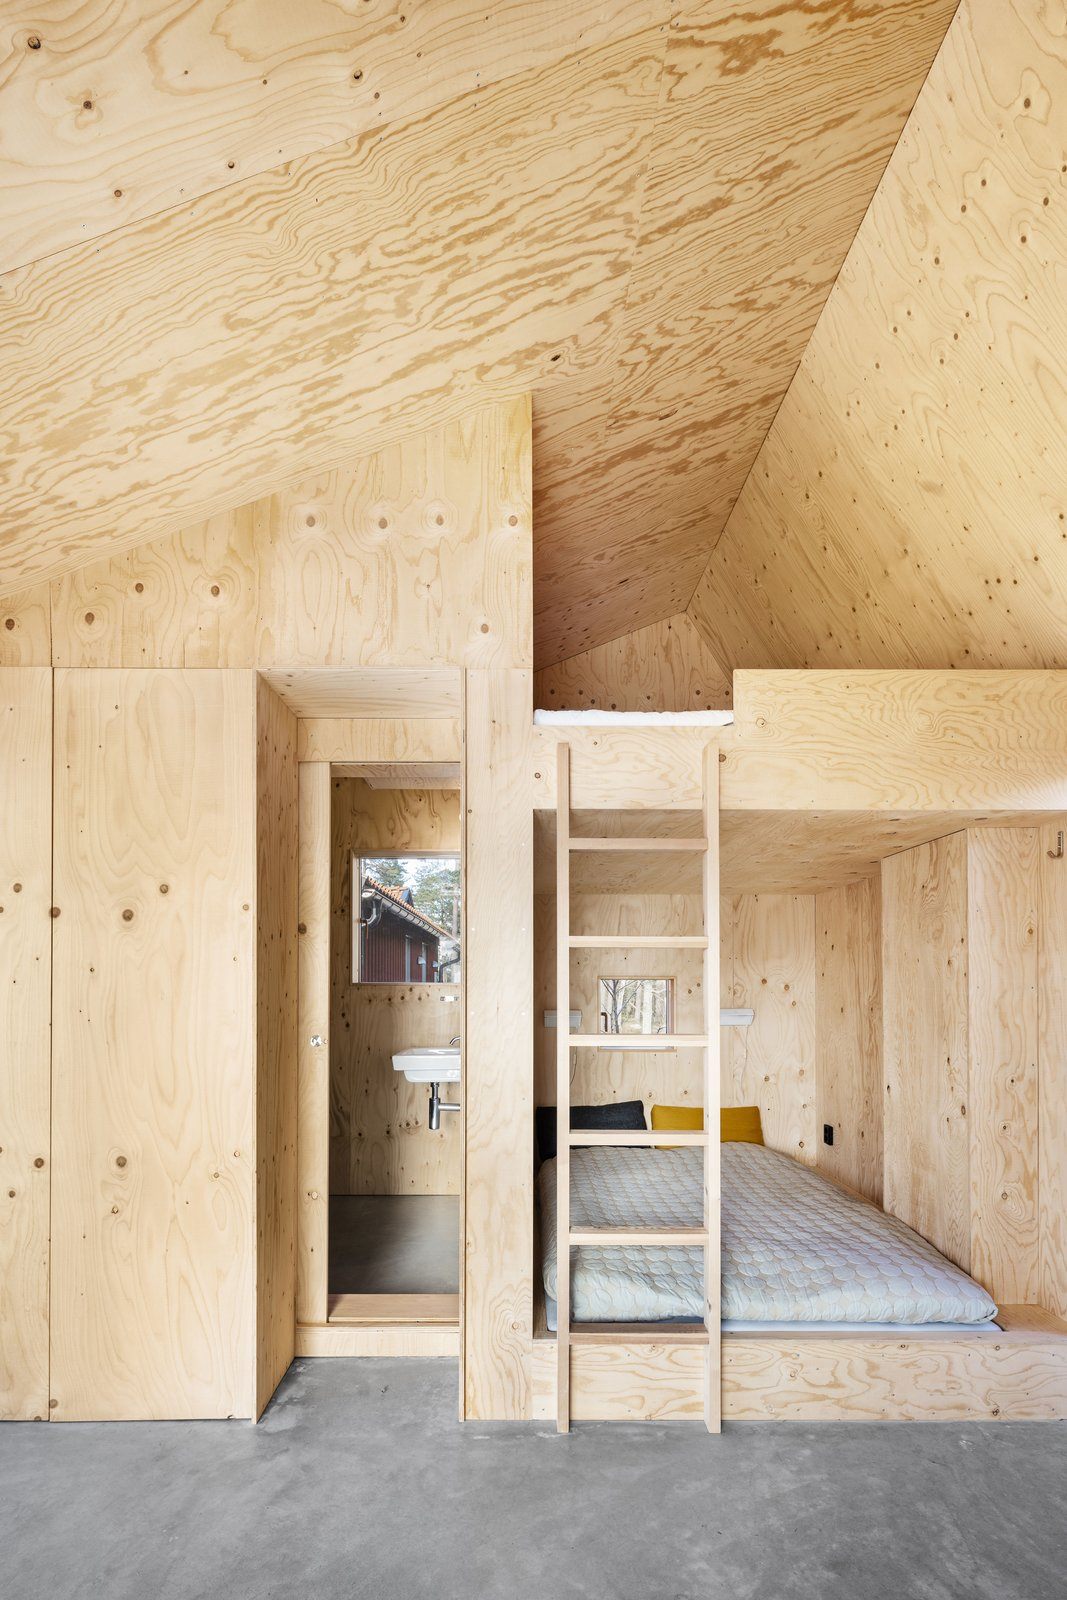 Monochrome House by Lookofsky Architecture plywood bedroom with bunk beds